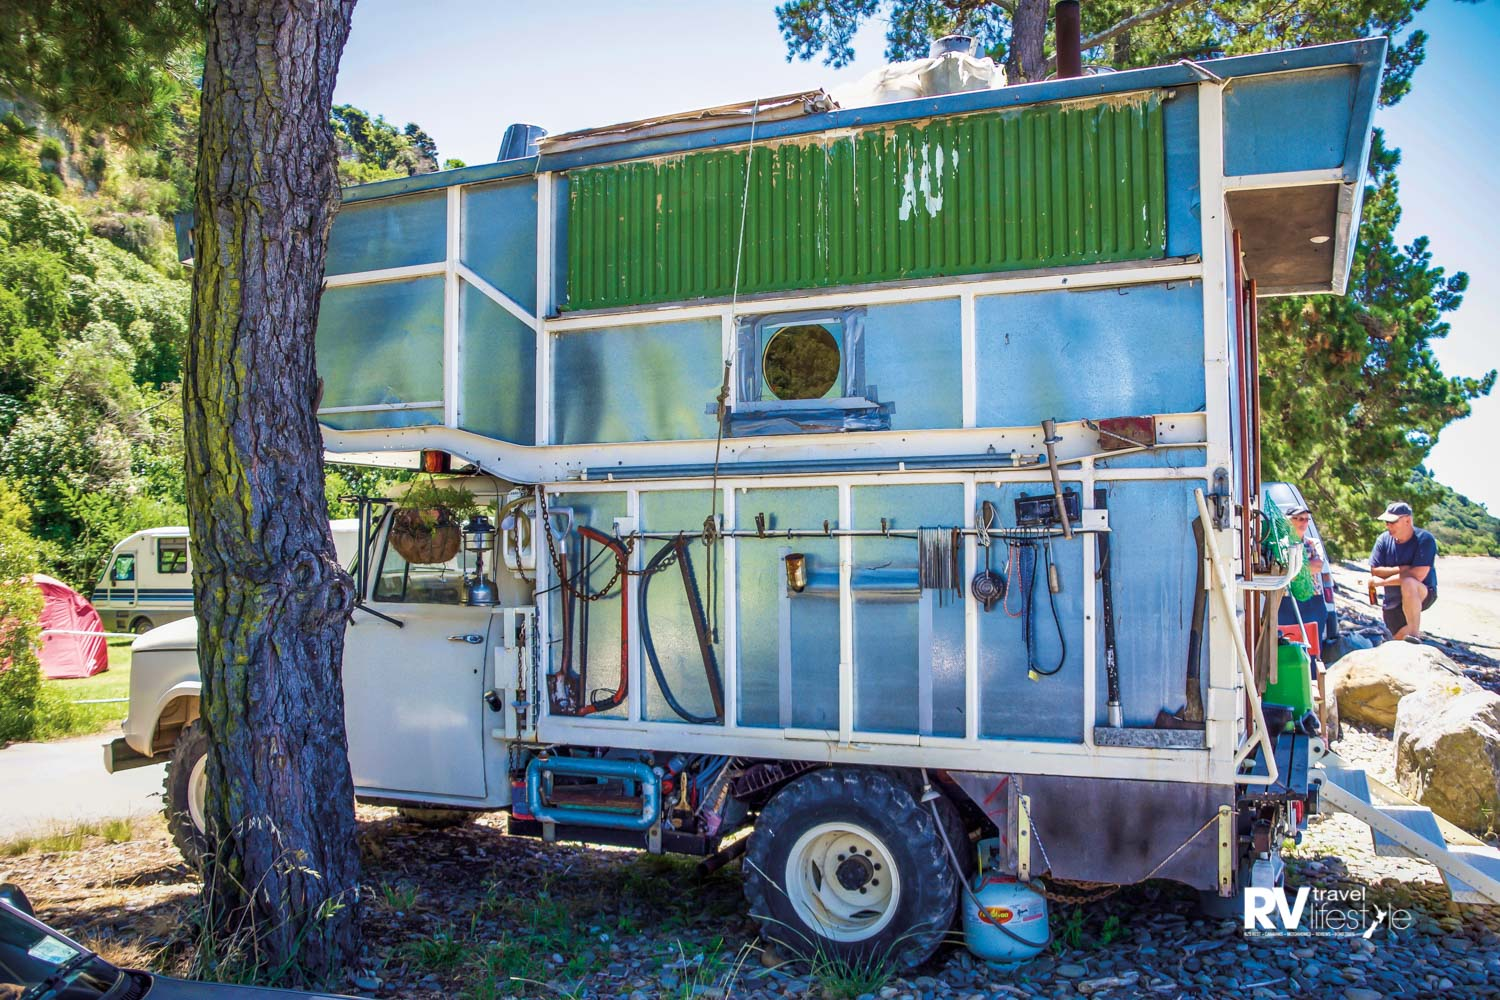 This unique home on wheels not only attracts people's attention, it's a dream playground for keas